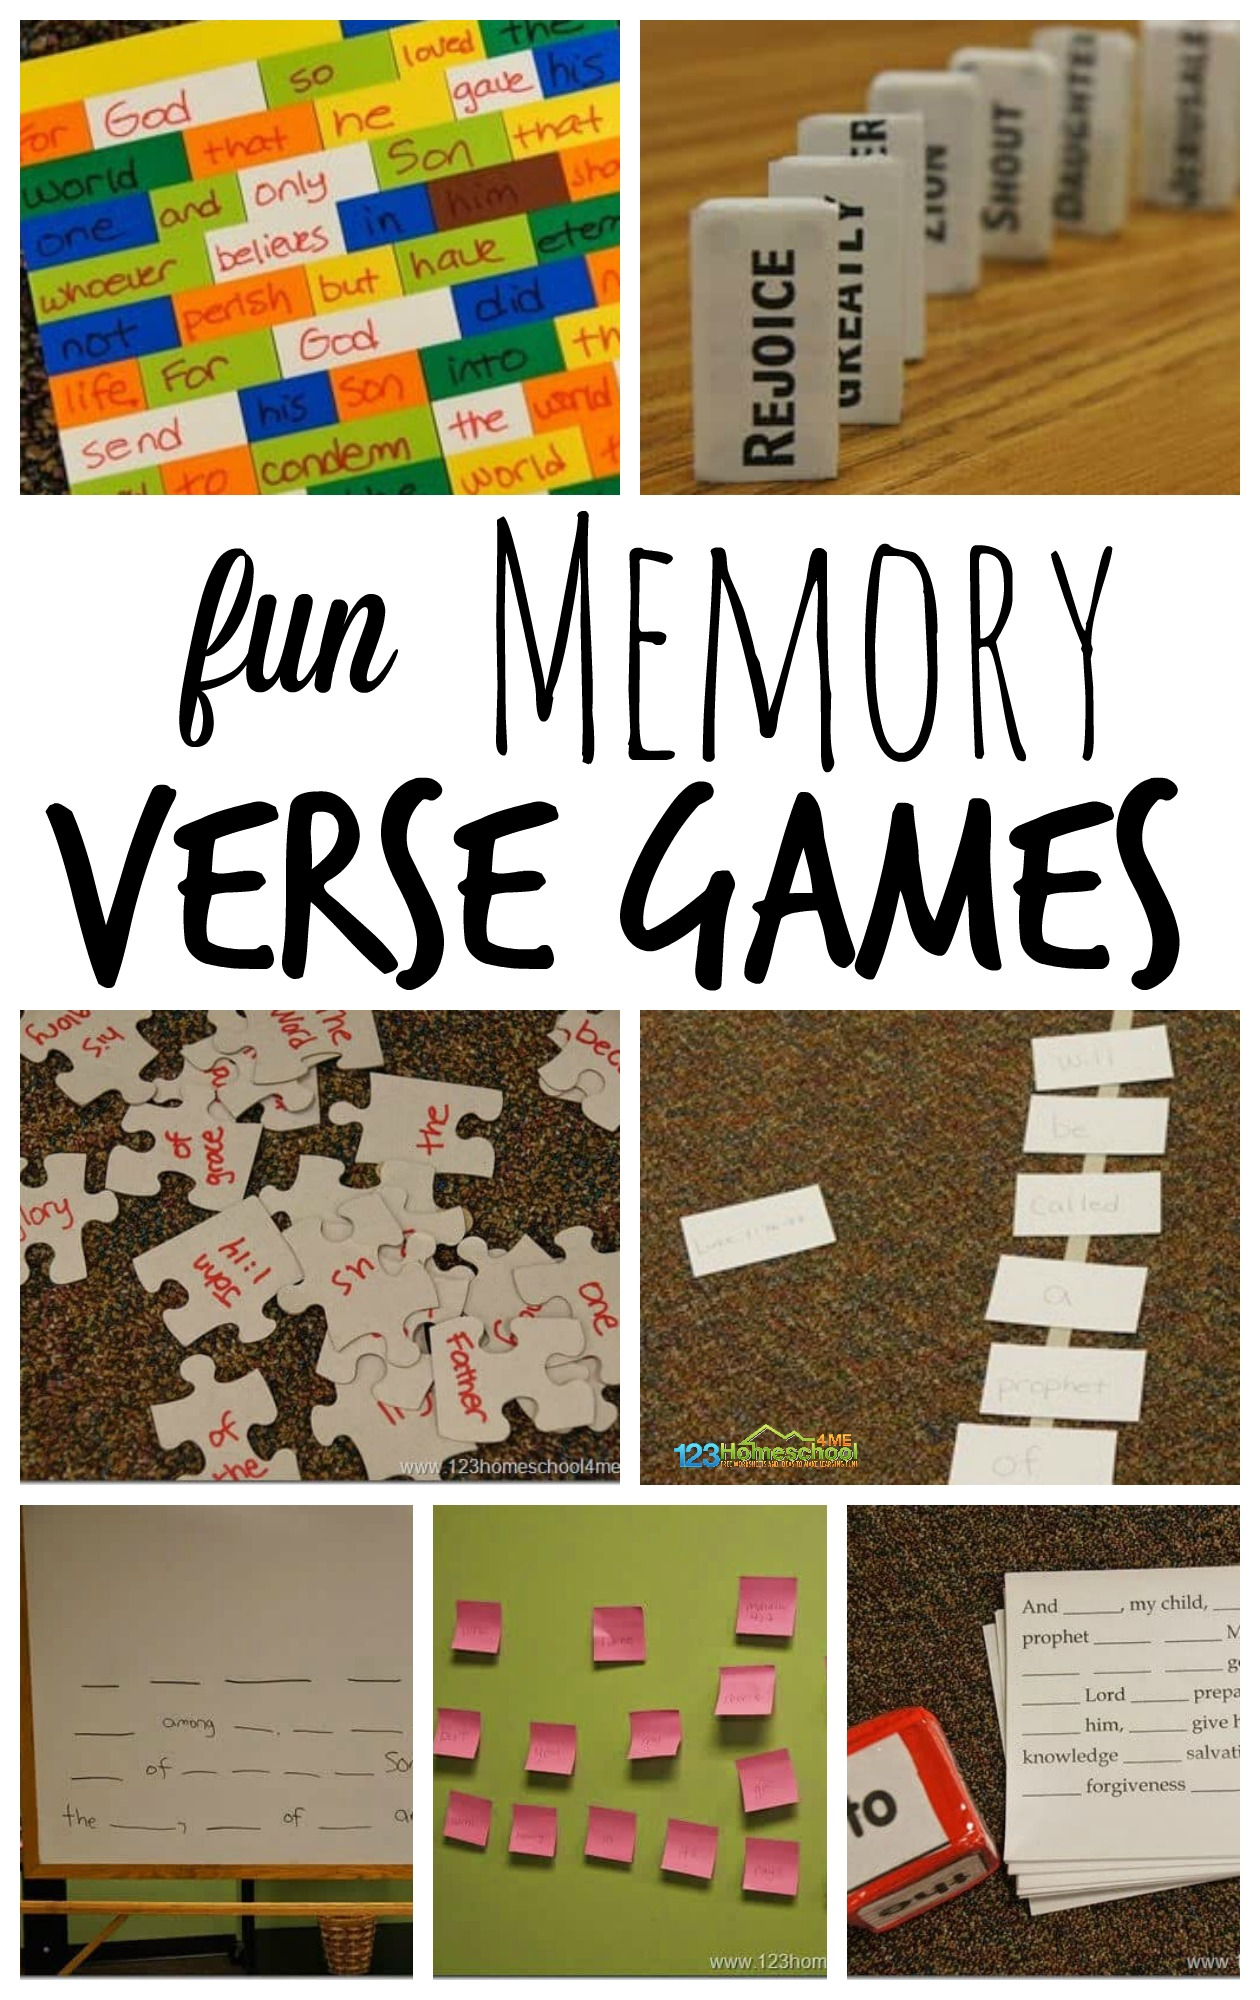 hight resolution of 7 FUN Memory Verse Games (work with any verse)